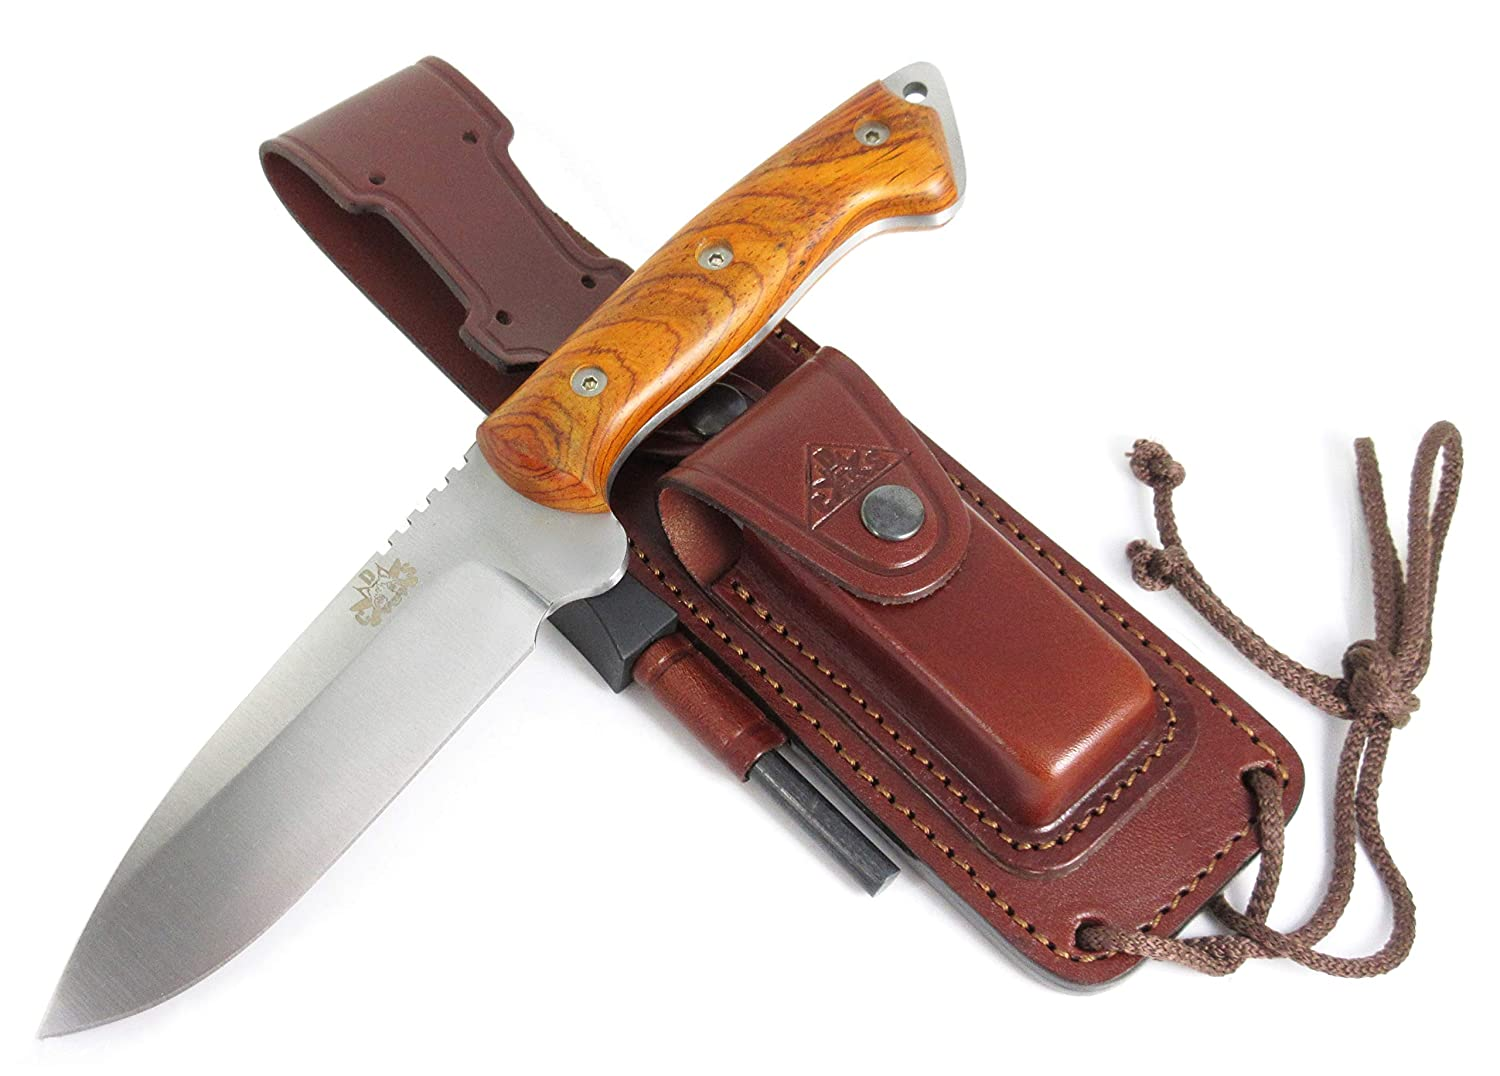 CELTIBEROCOCO – Outdoor Survival Hunting Tactical Knife – Cocobolo Wood Handle, Stainless Steel MOVA-58 with Genuine Leather Multi-positioned Sheath Sharpener Stone Firesteel